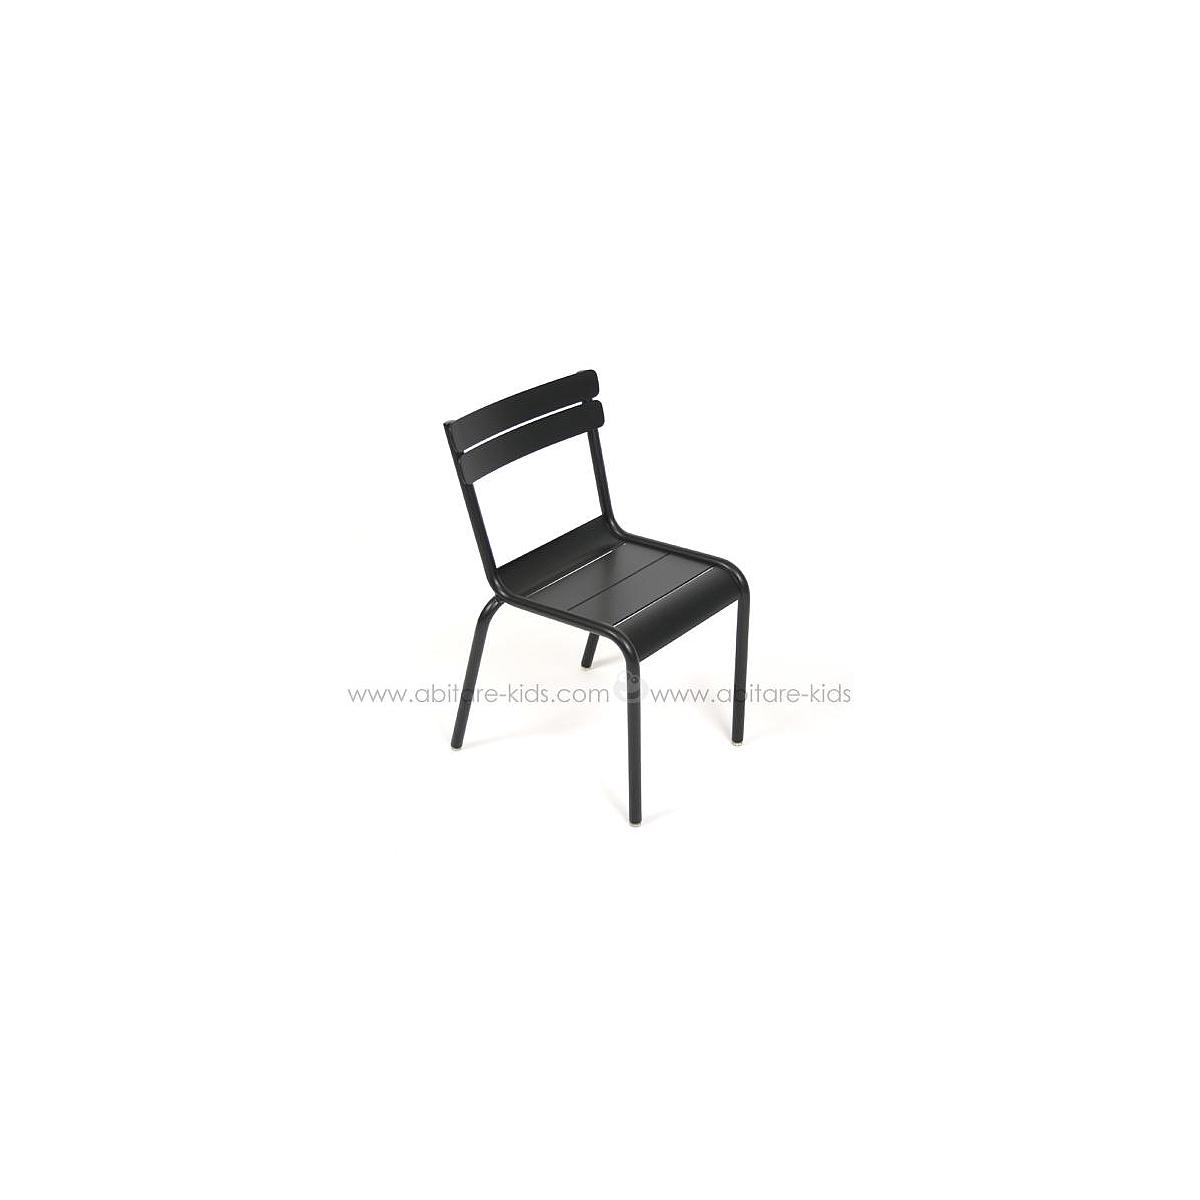 LUXEMBOURG KID by Fermob Chaise noir réglisse